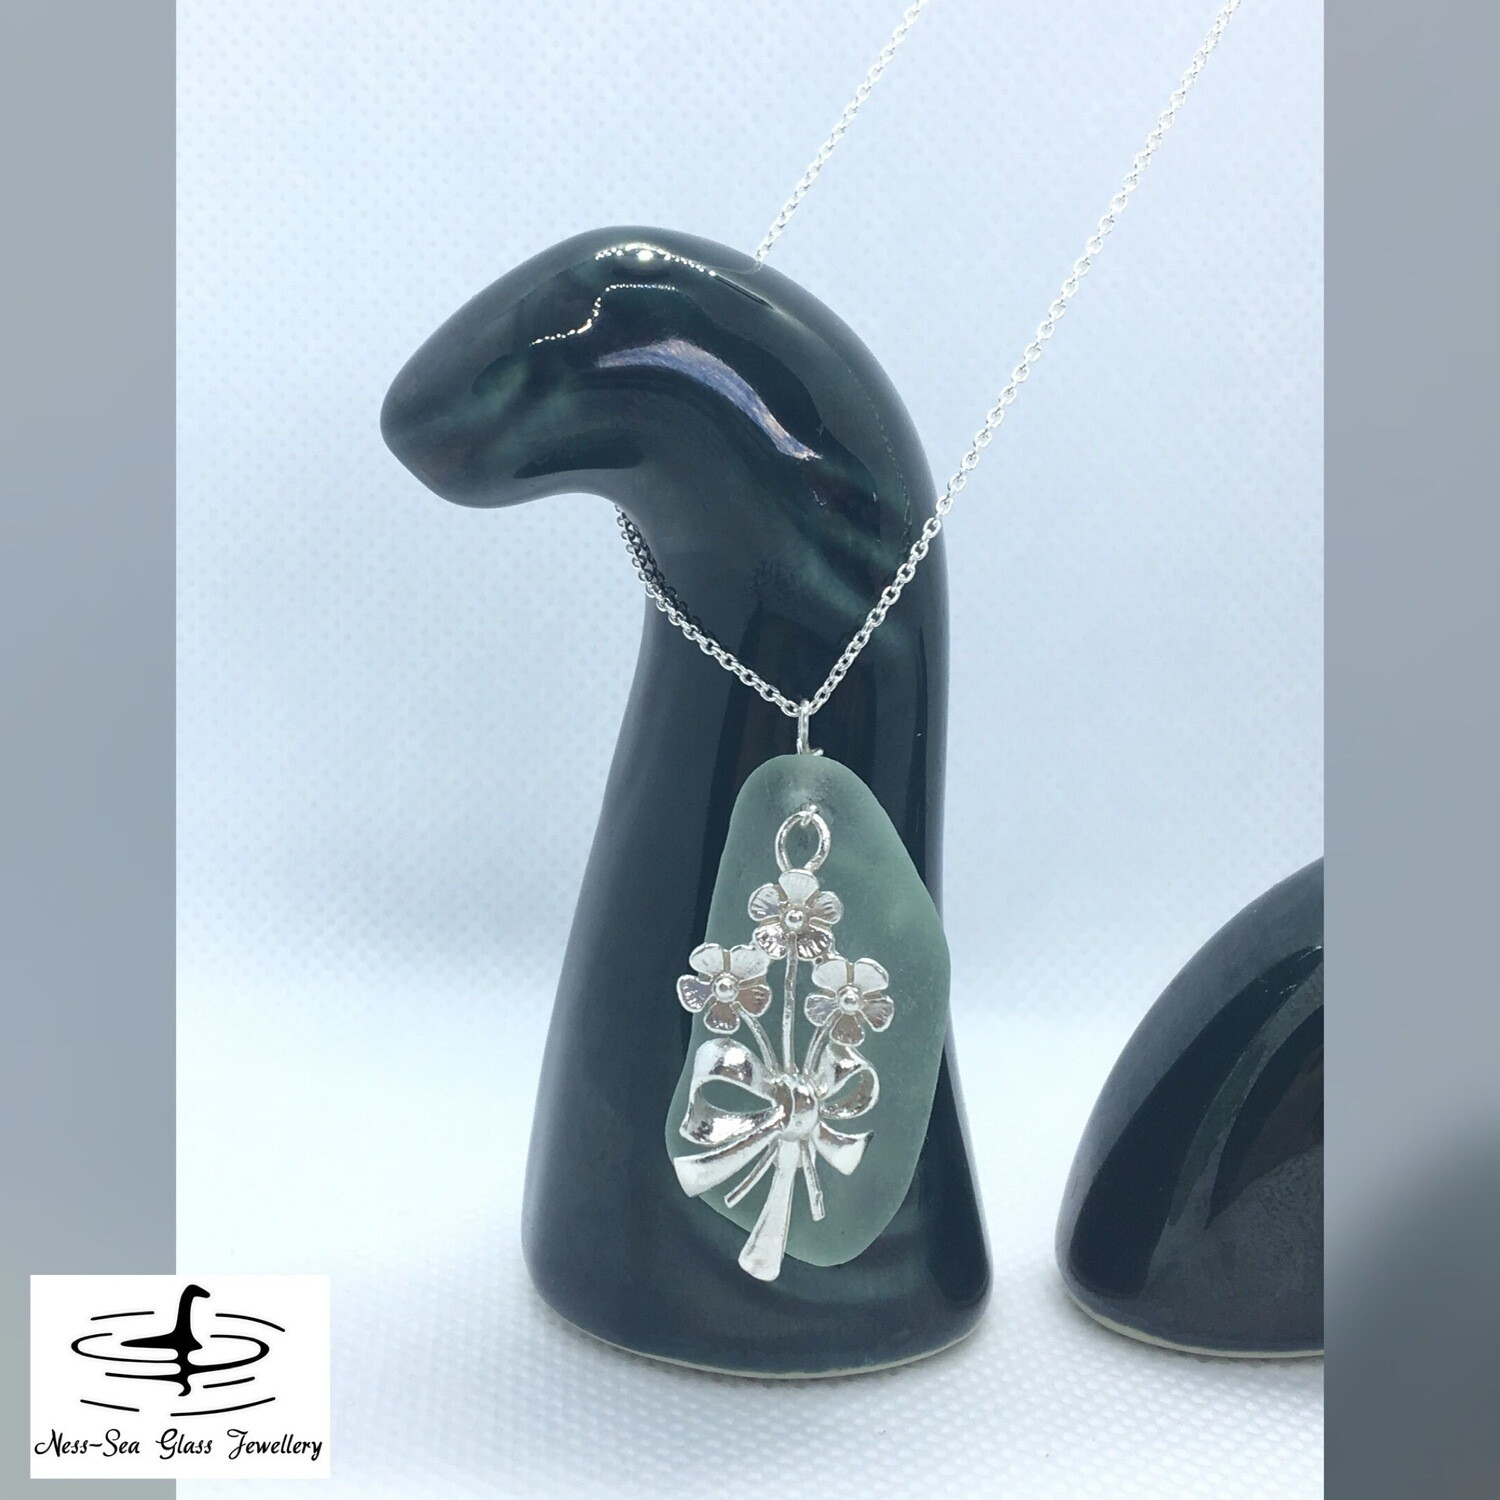 Blue Loch Ness Sea Glass Necklace with Sterling Silver Bunch of Flowers Detail and Fine Sterling Silver Chain